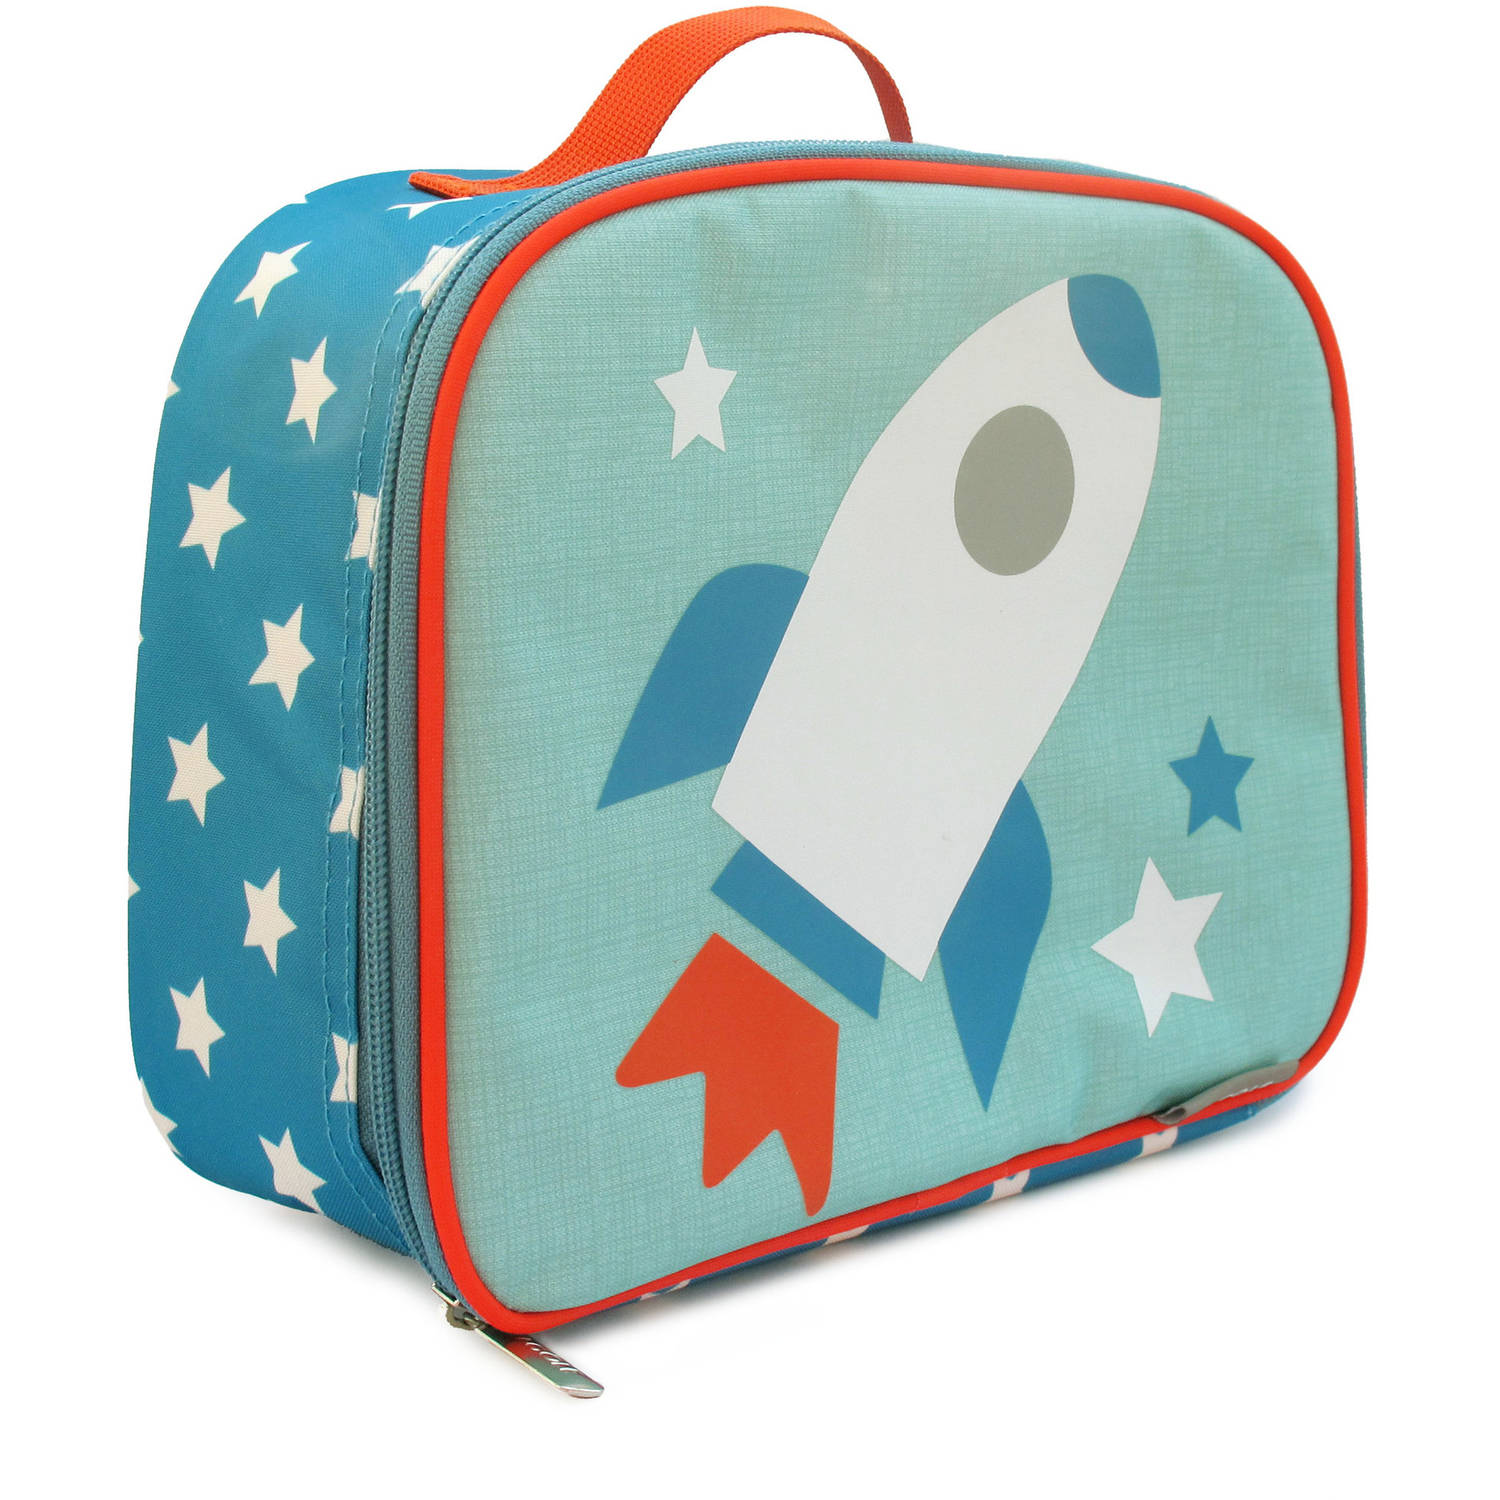 Little JJ Cole Toddler Lunch Bag, Rocket